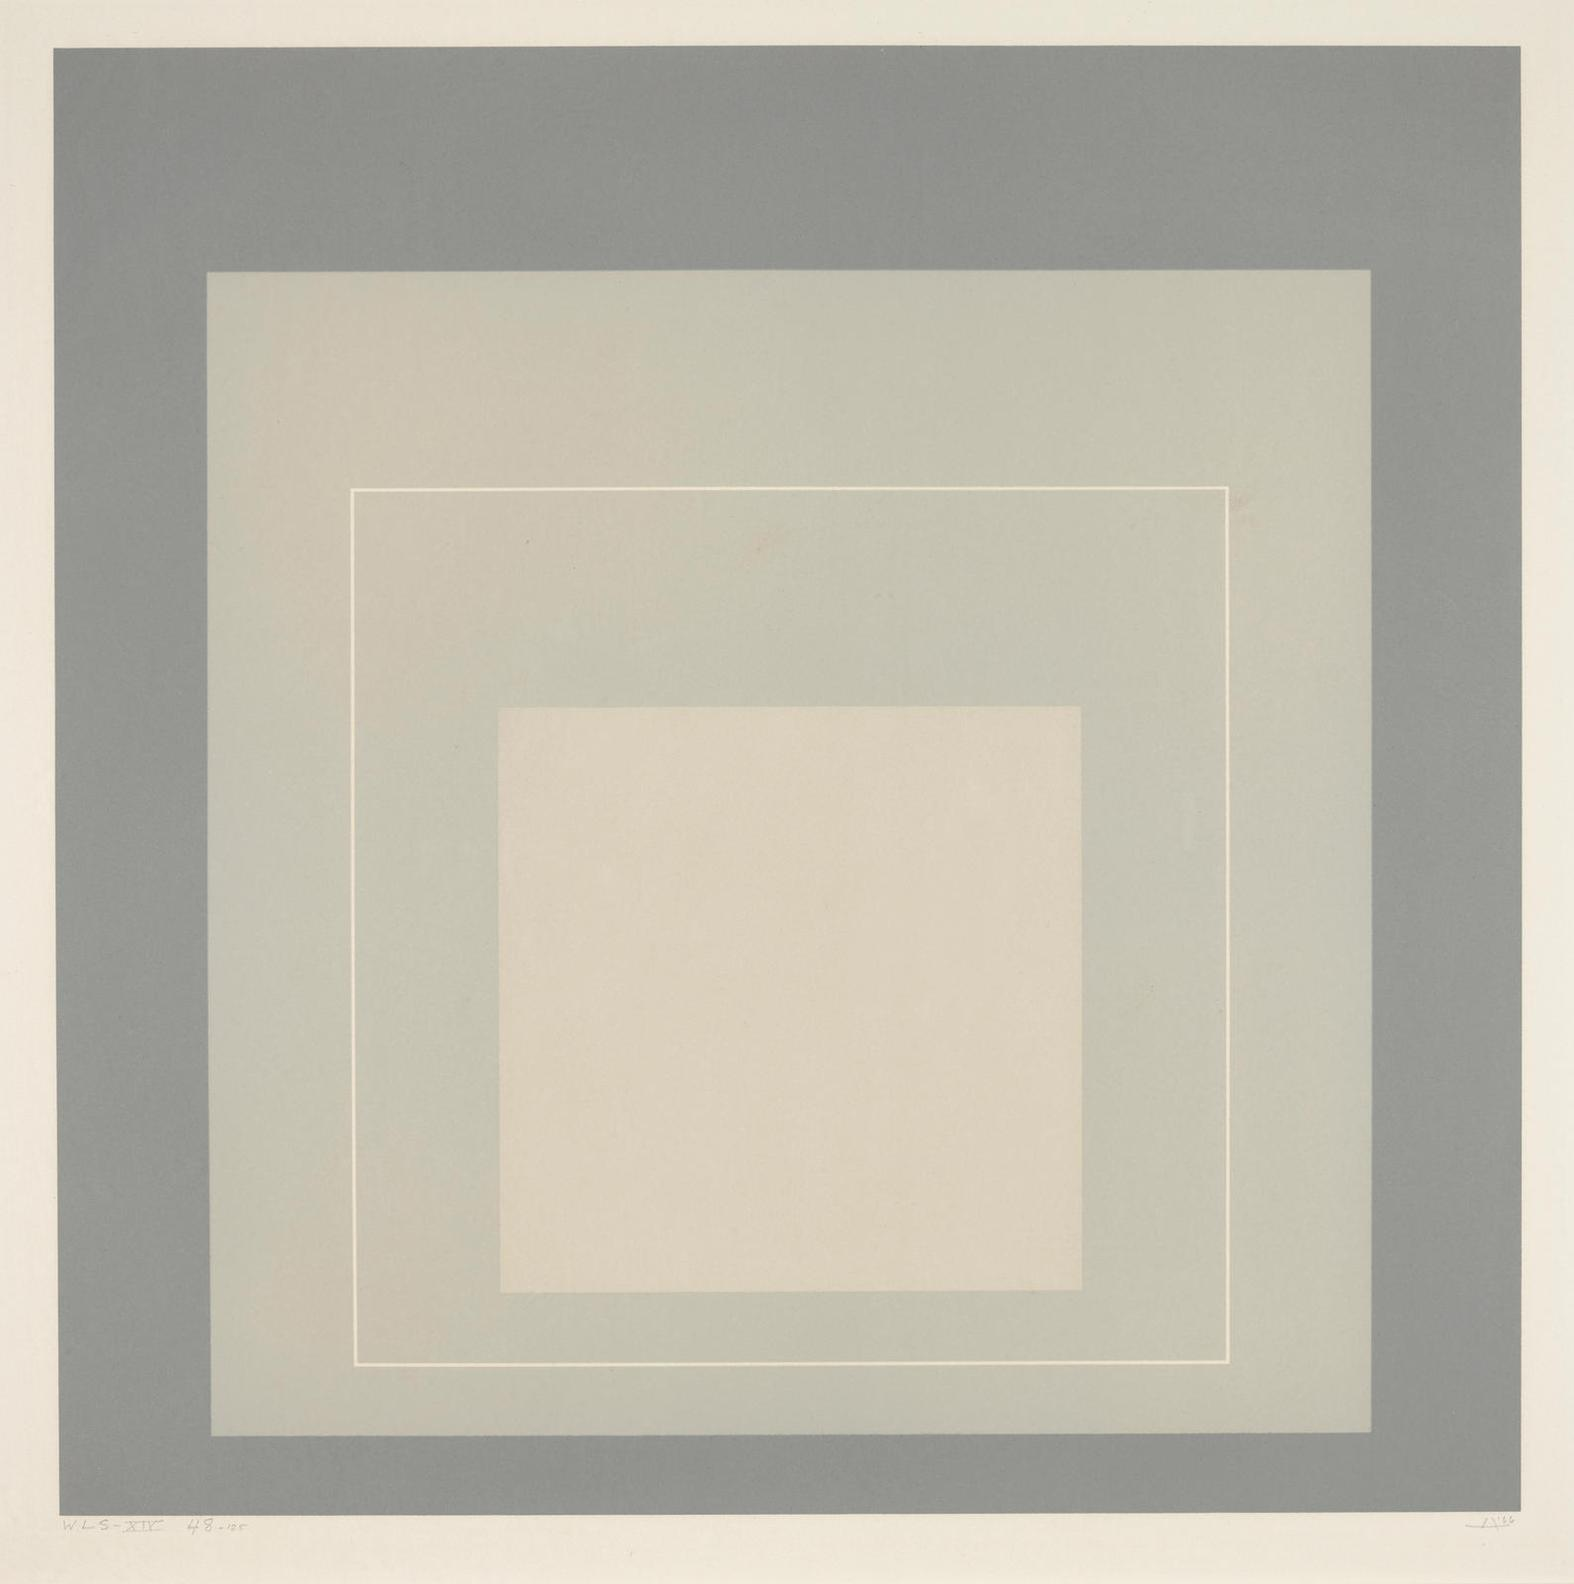 Josef Albers-Wls Xiv, From The White Line Squares (Series II) (D. 172.6)-1966